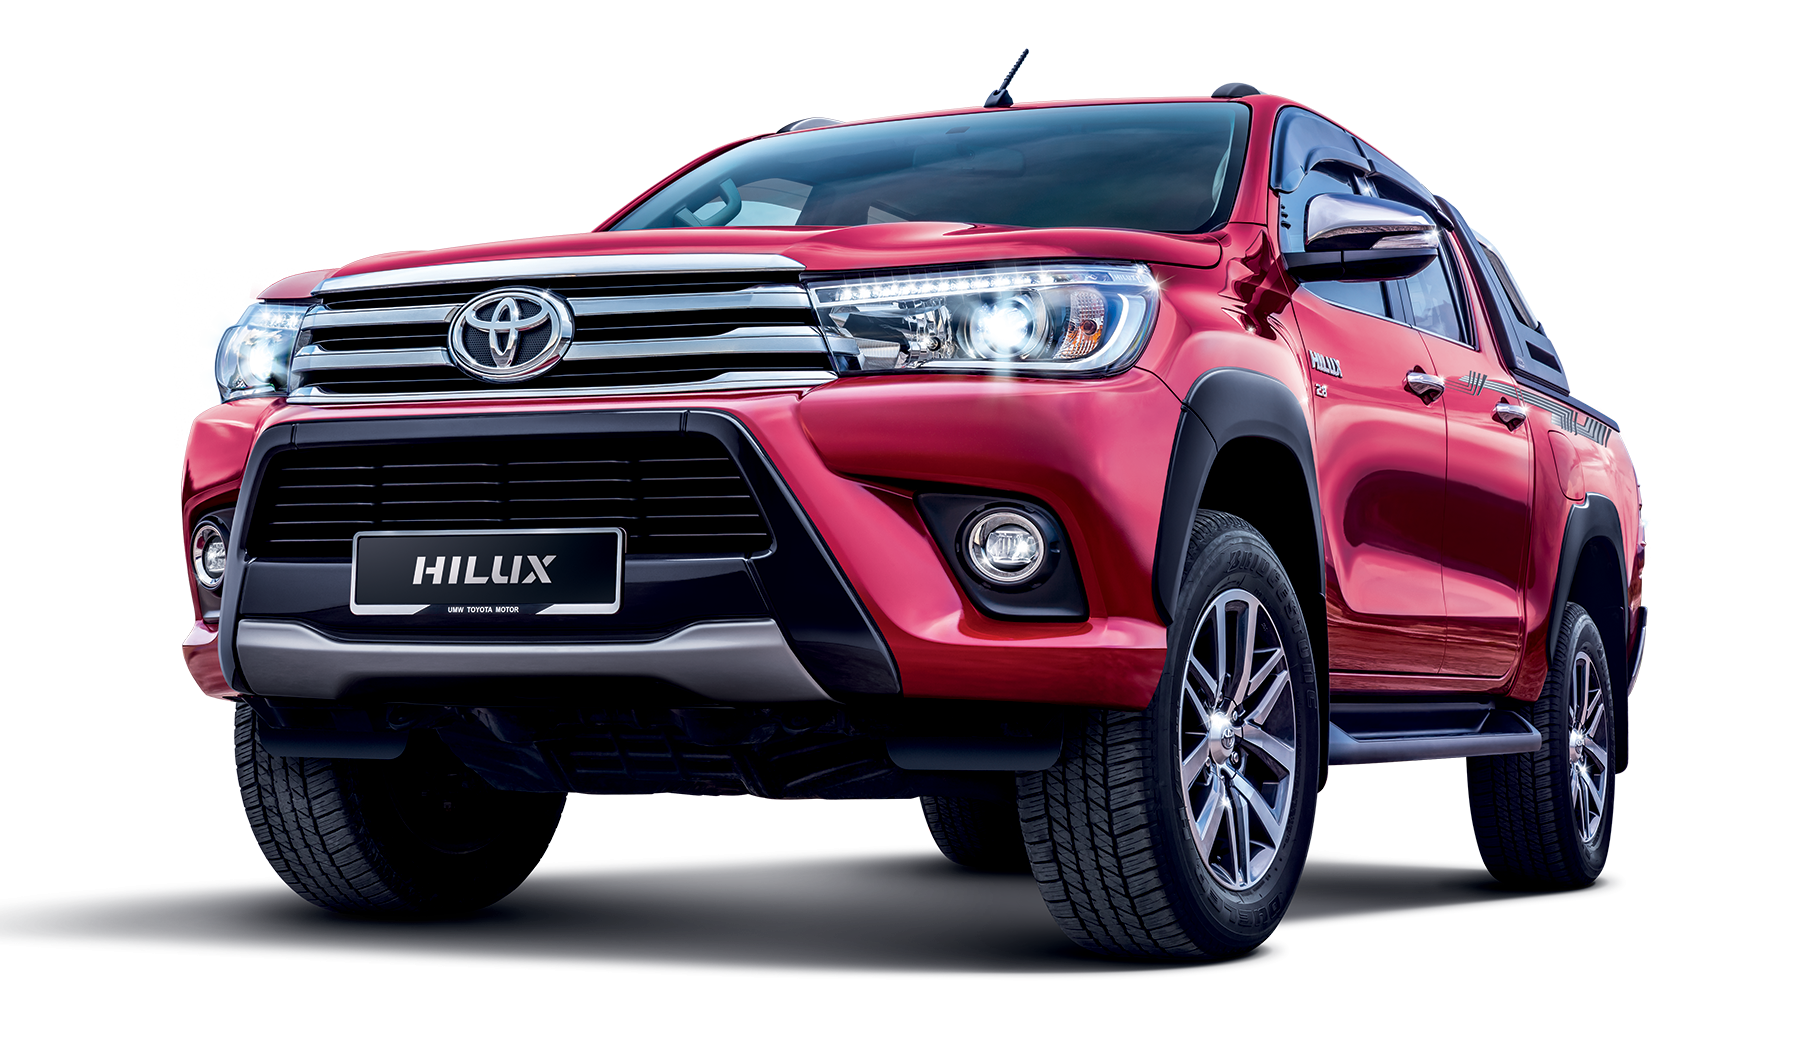 toyota hilux 6 toyota hilux hilux paul. Black Bedroom Furniture Sets. Home Design Ideas